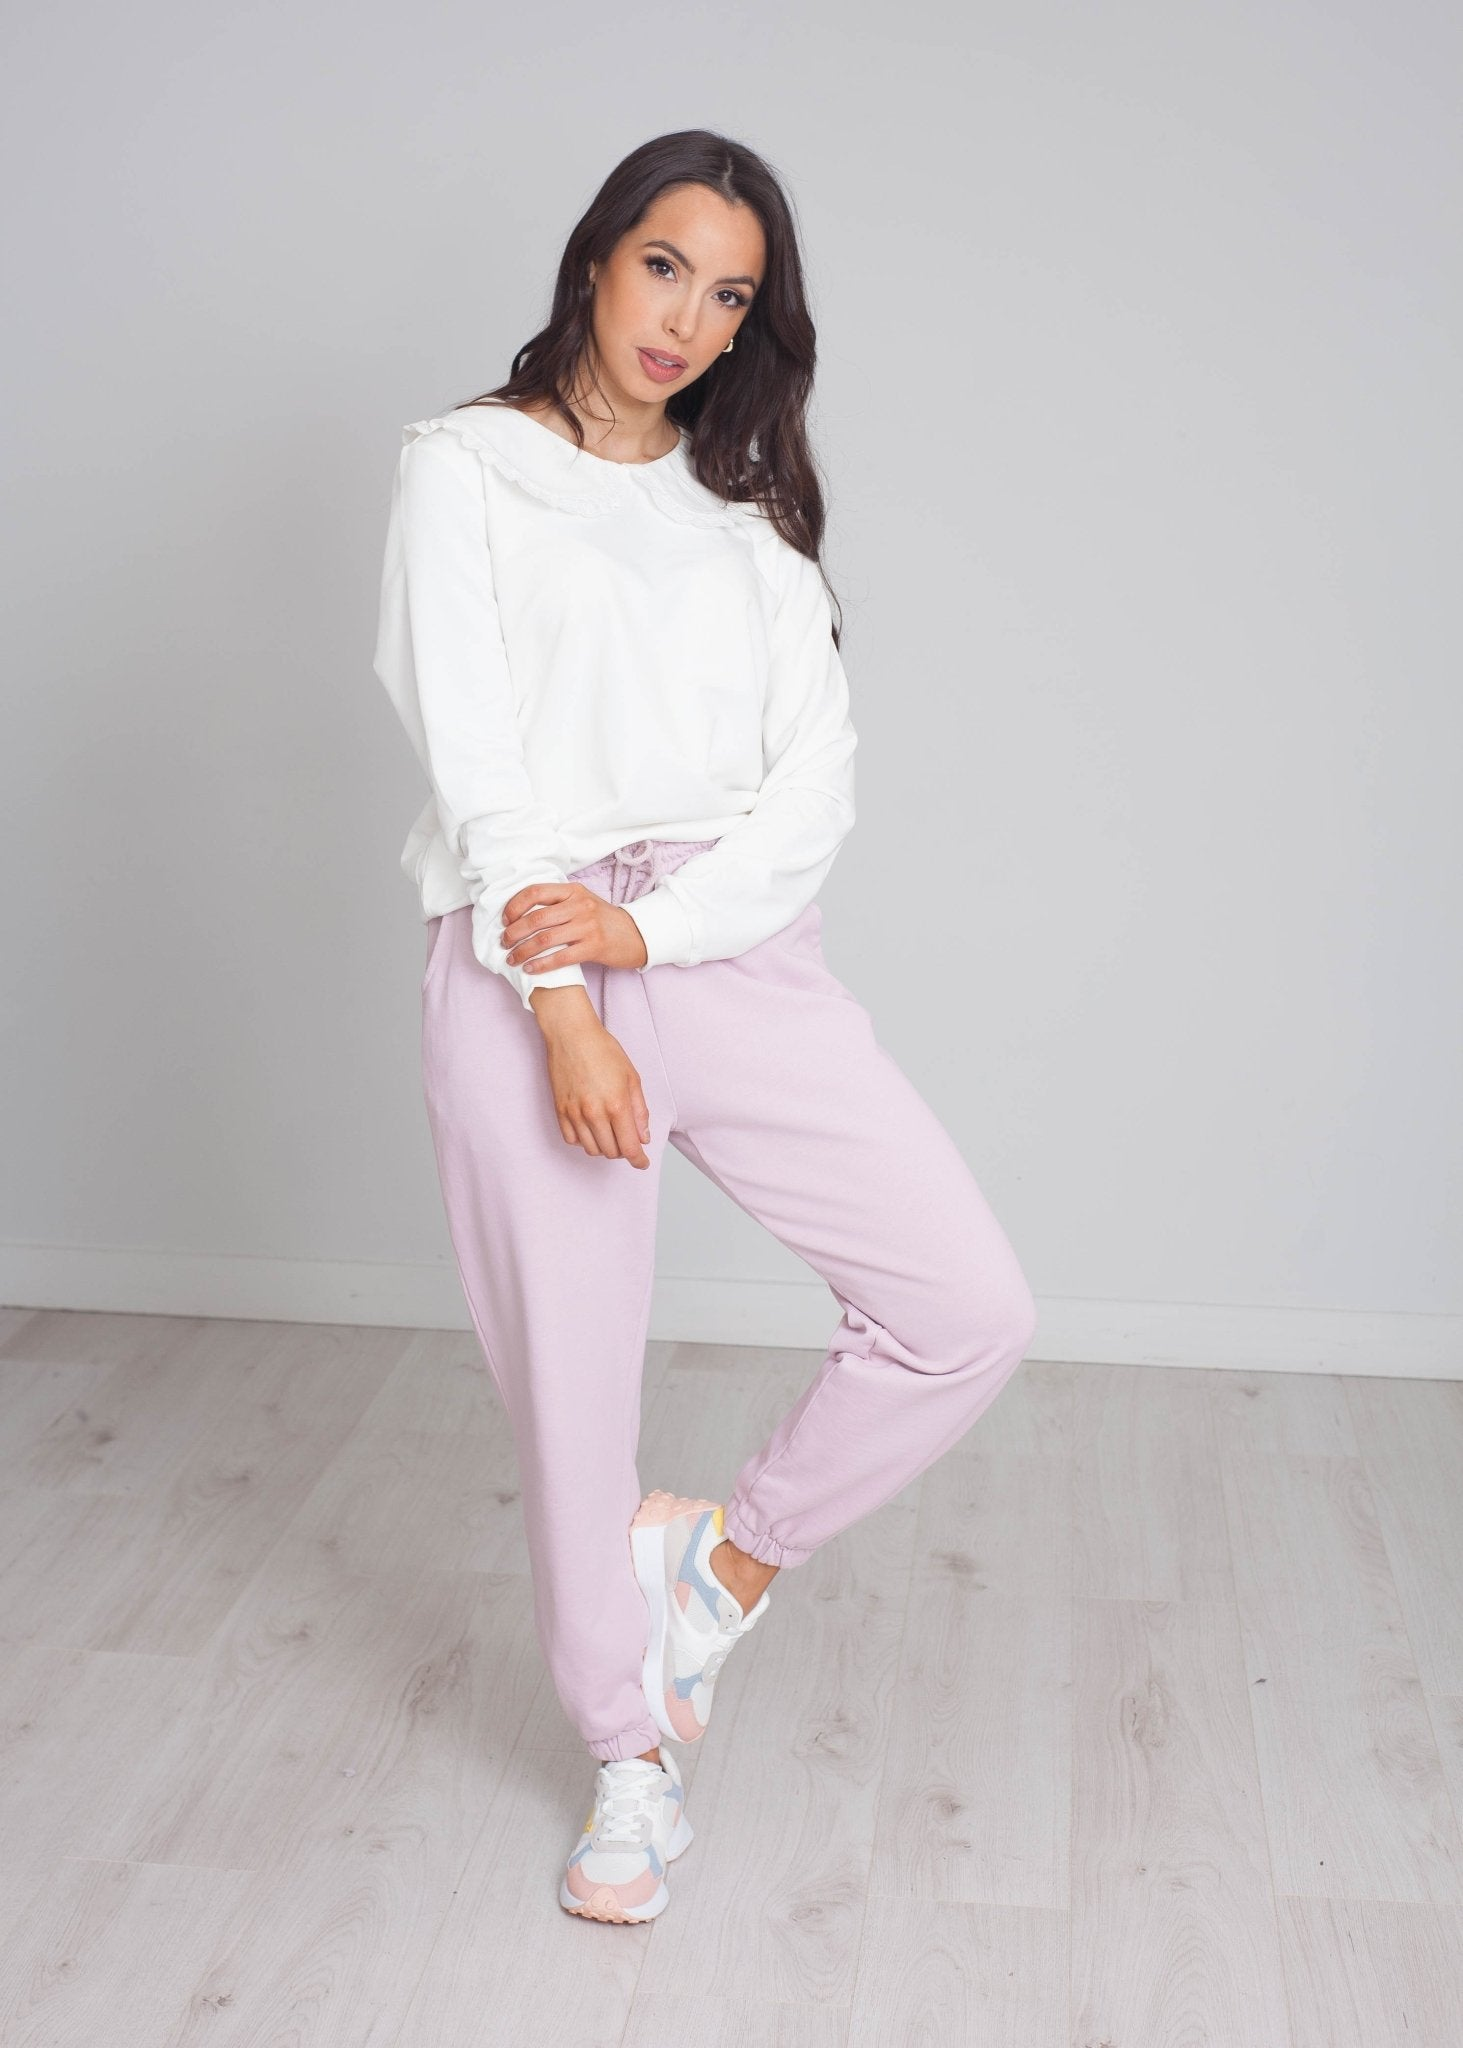 Laura Joggers In Blush - The Walk in Wardrobe